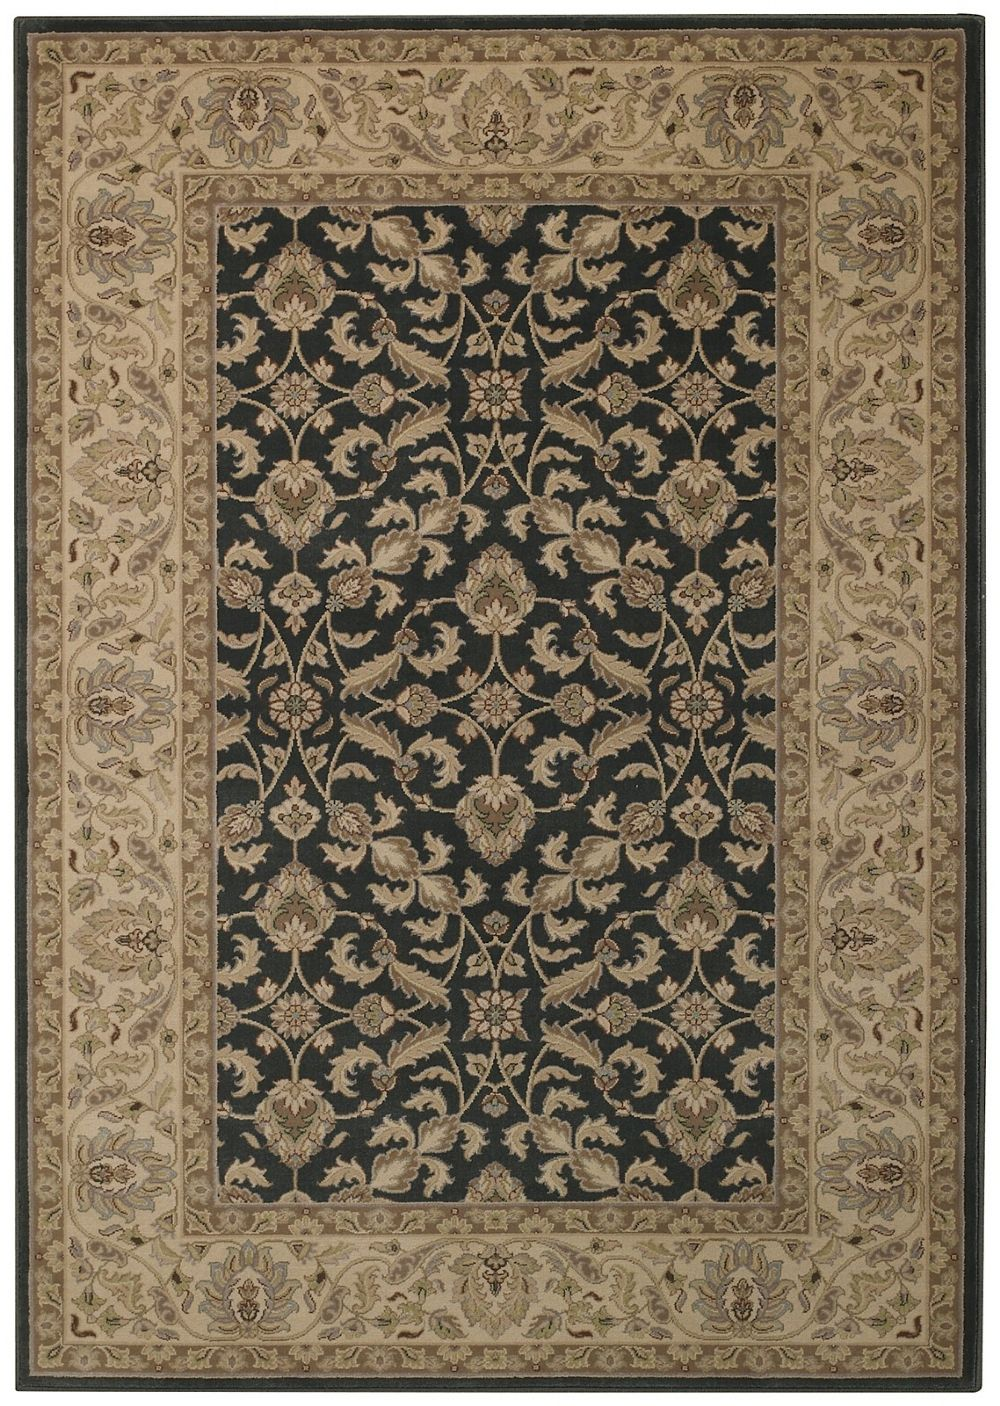 capel quiescent-classic traditional area rug collection